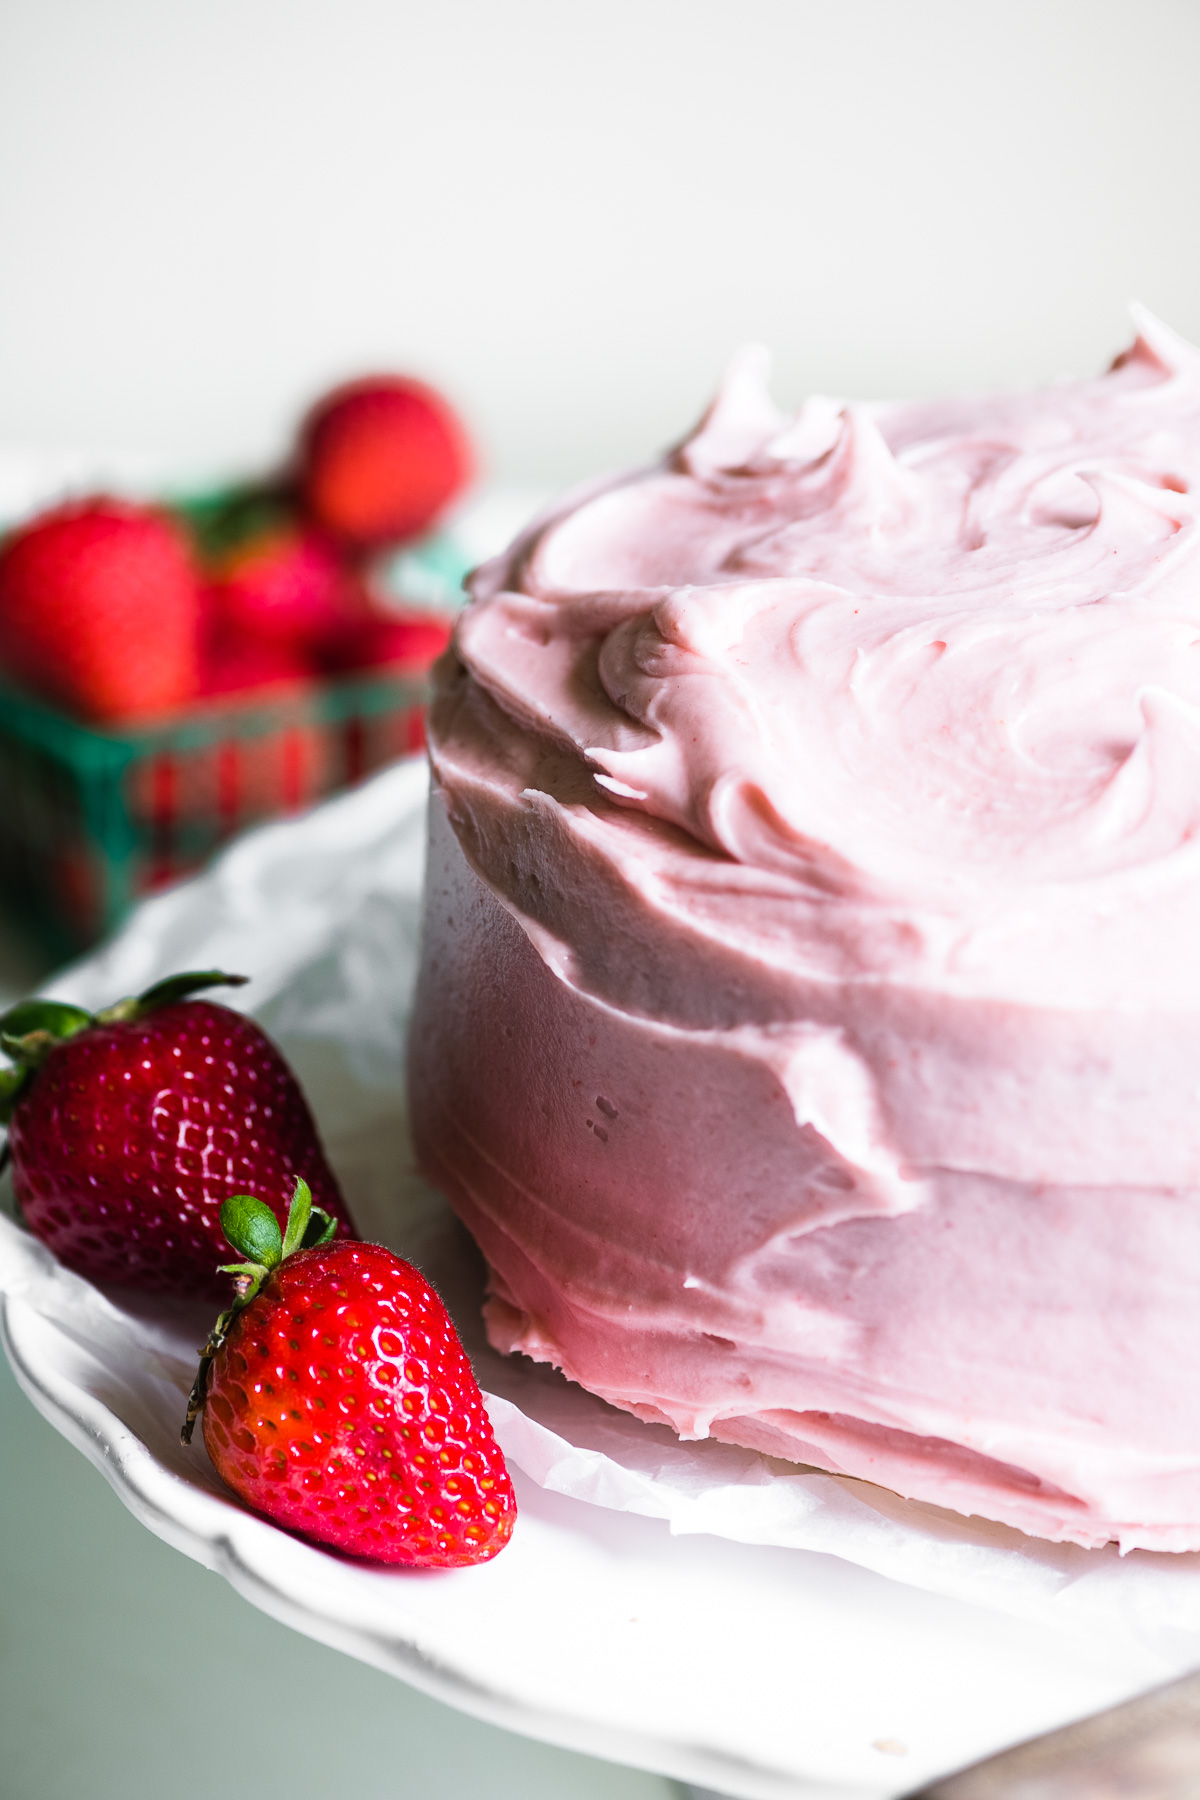 Strawberry layer cake with fresh strawberries